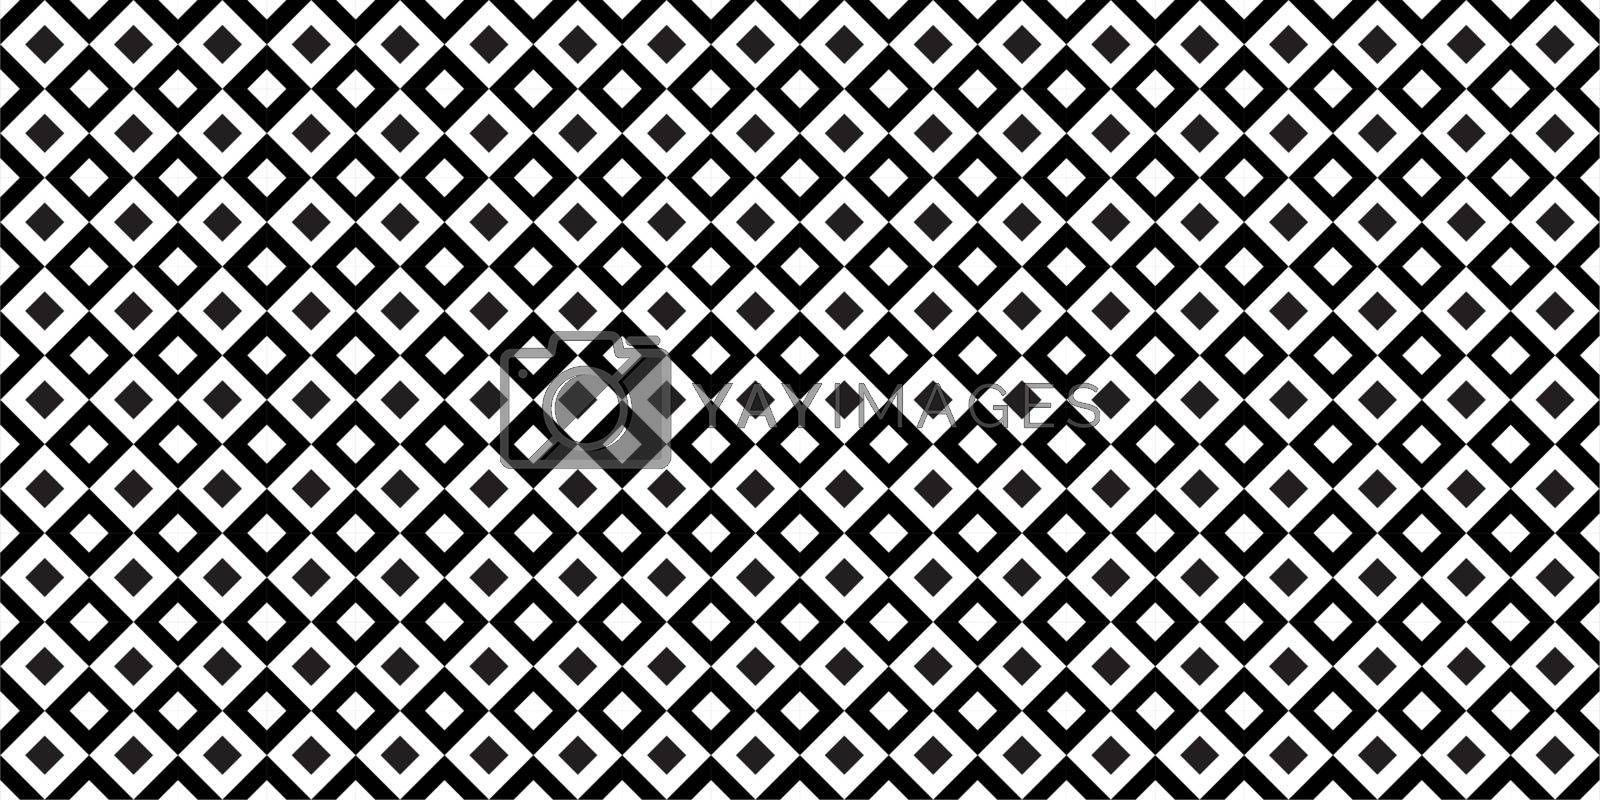 Black And White Seamless Pattern Vector Illustration